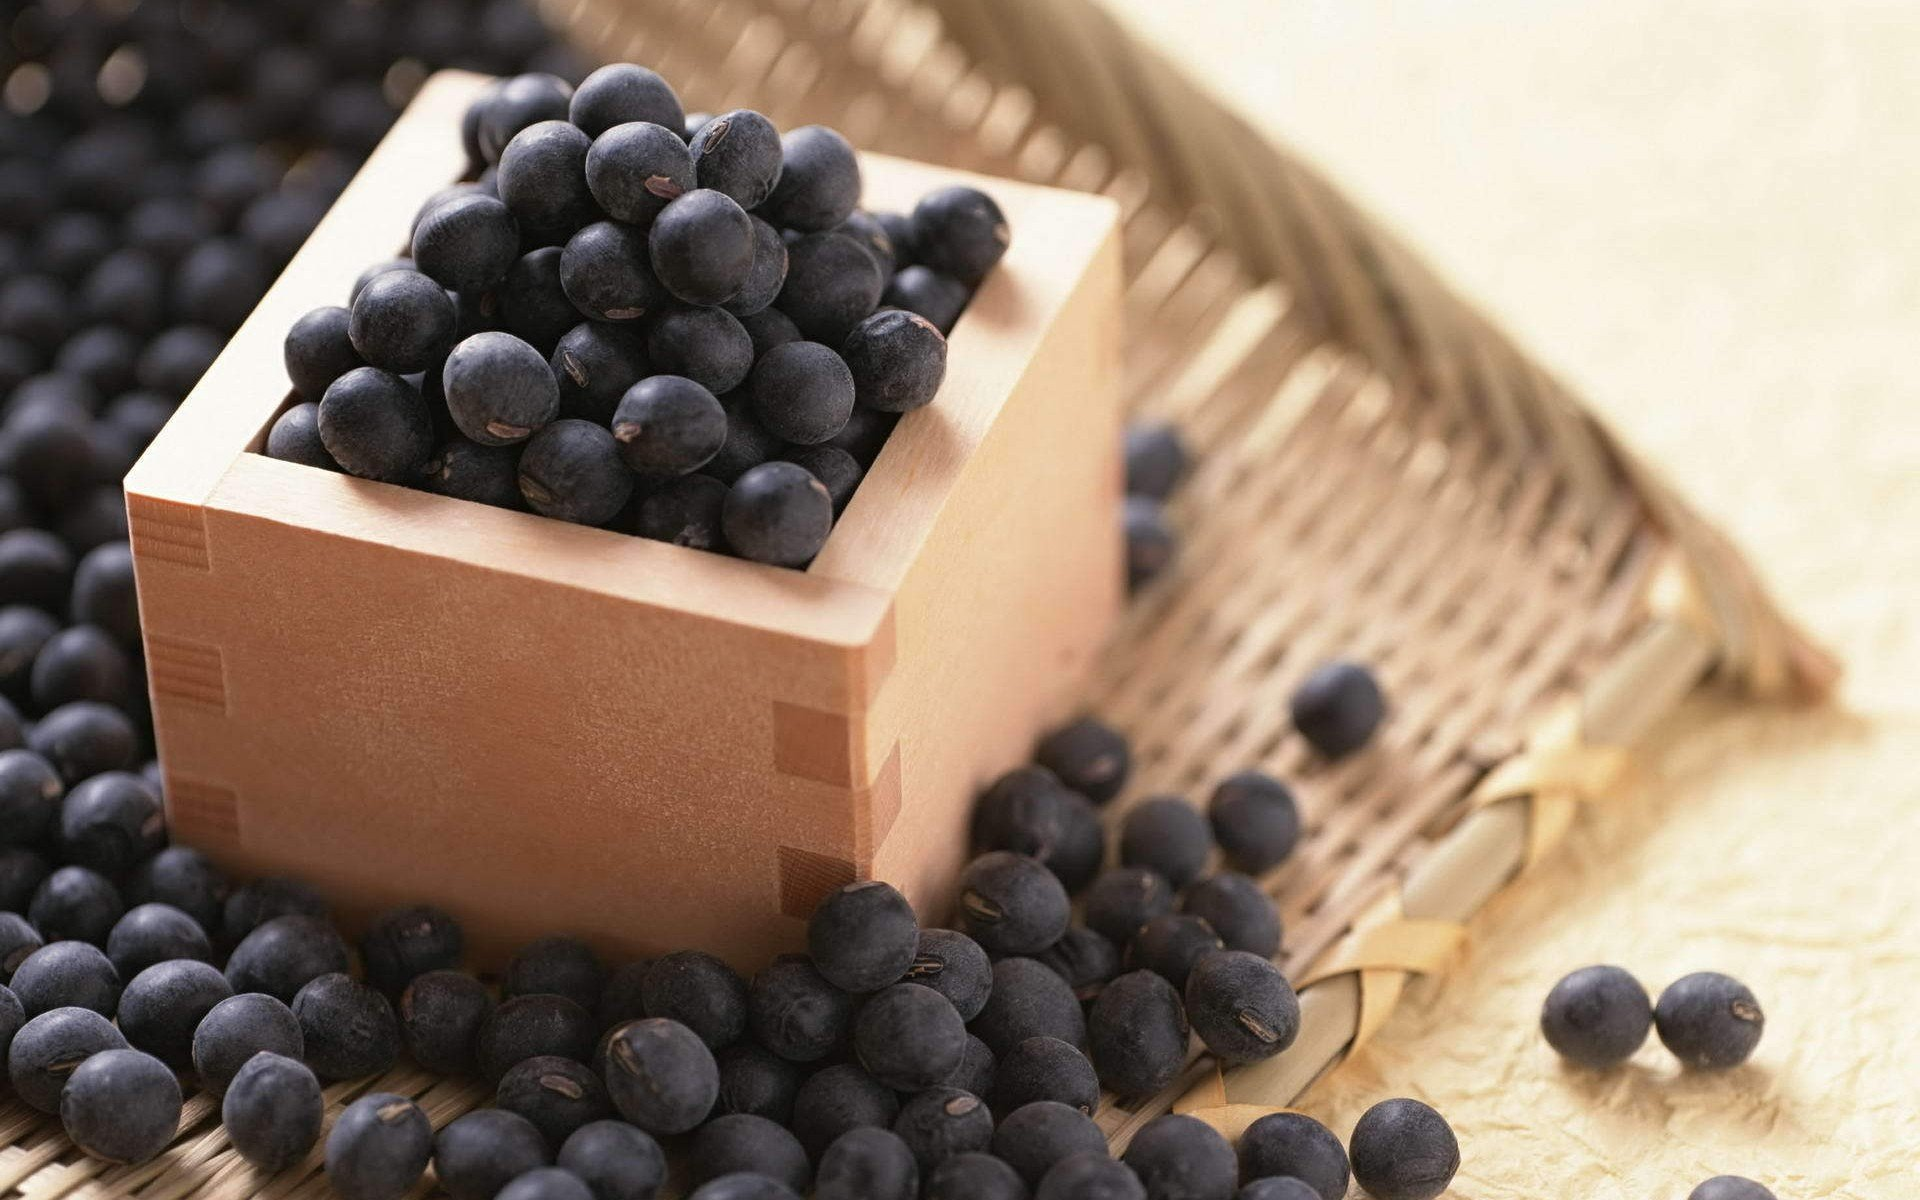 Free Blueberry high quality wallpaper ID:69006 for hd 1920x1200 PC